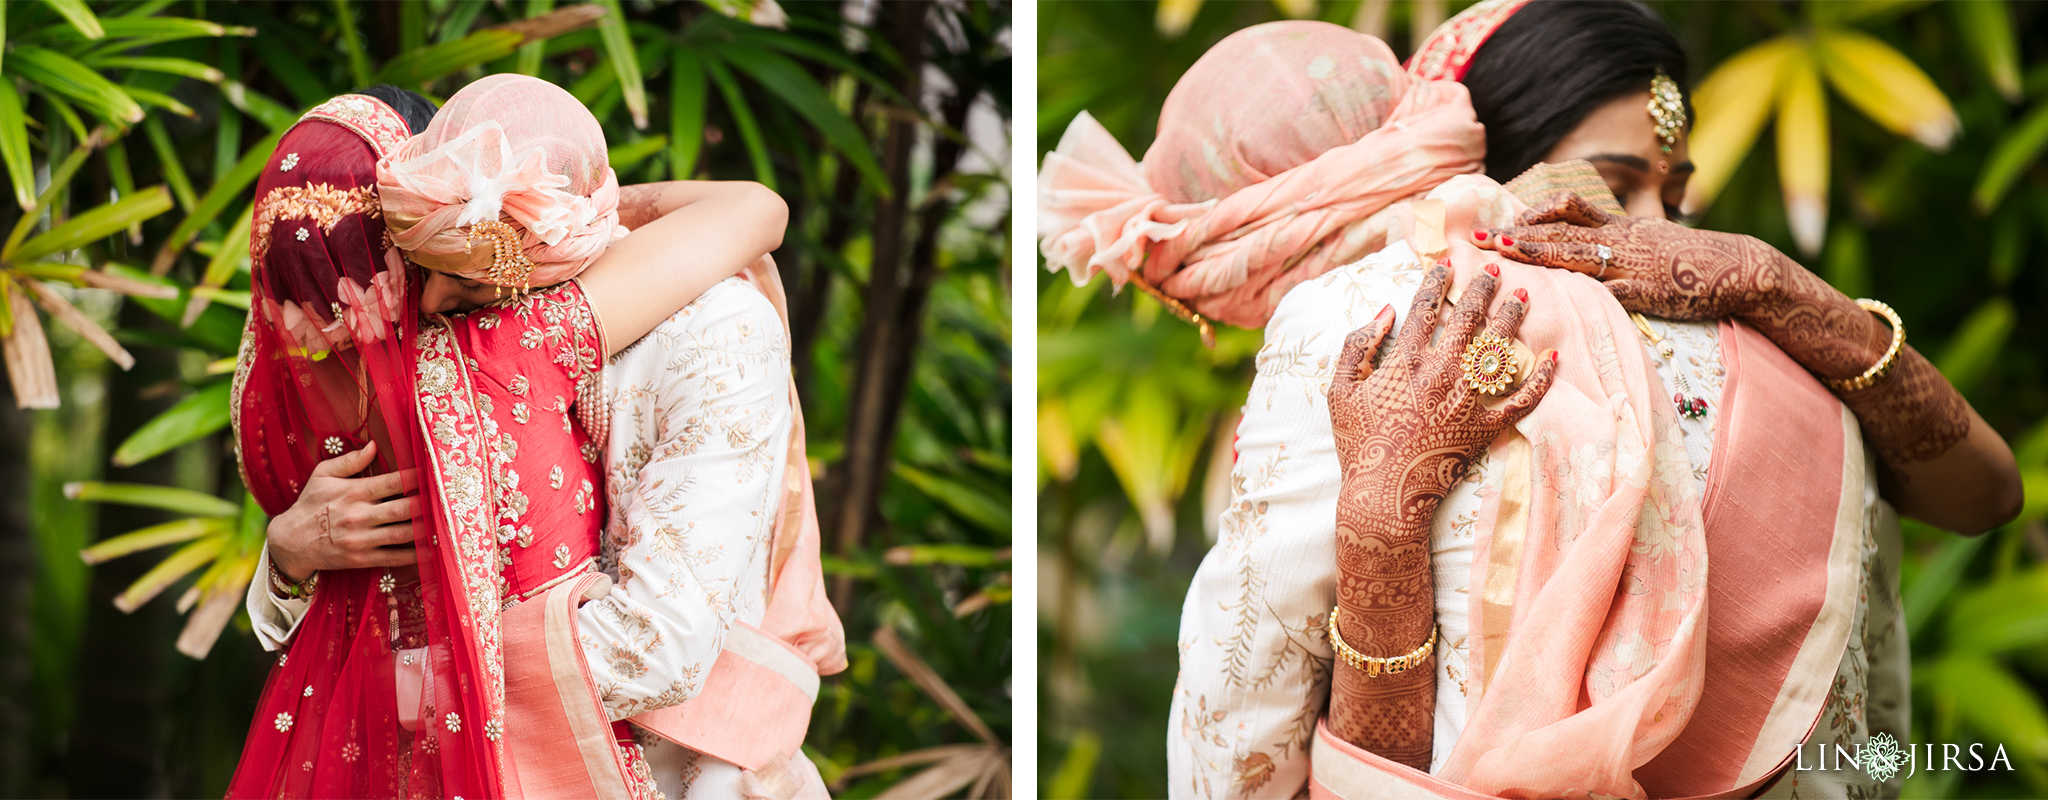 17 Ritz Carlton Laguna Niguel Indian Wedding Photography